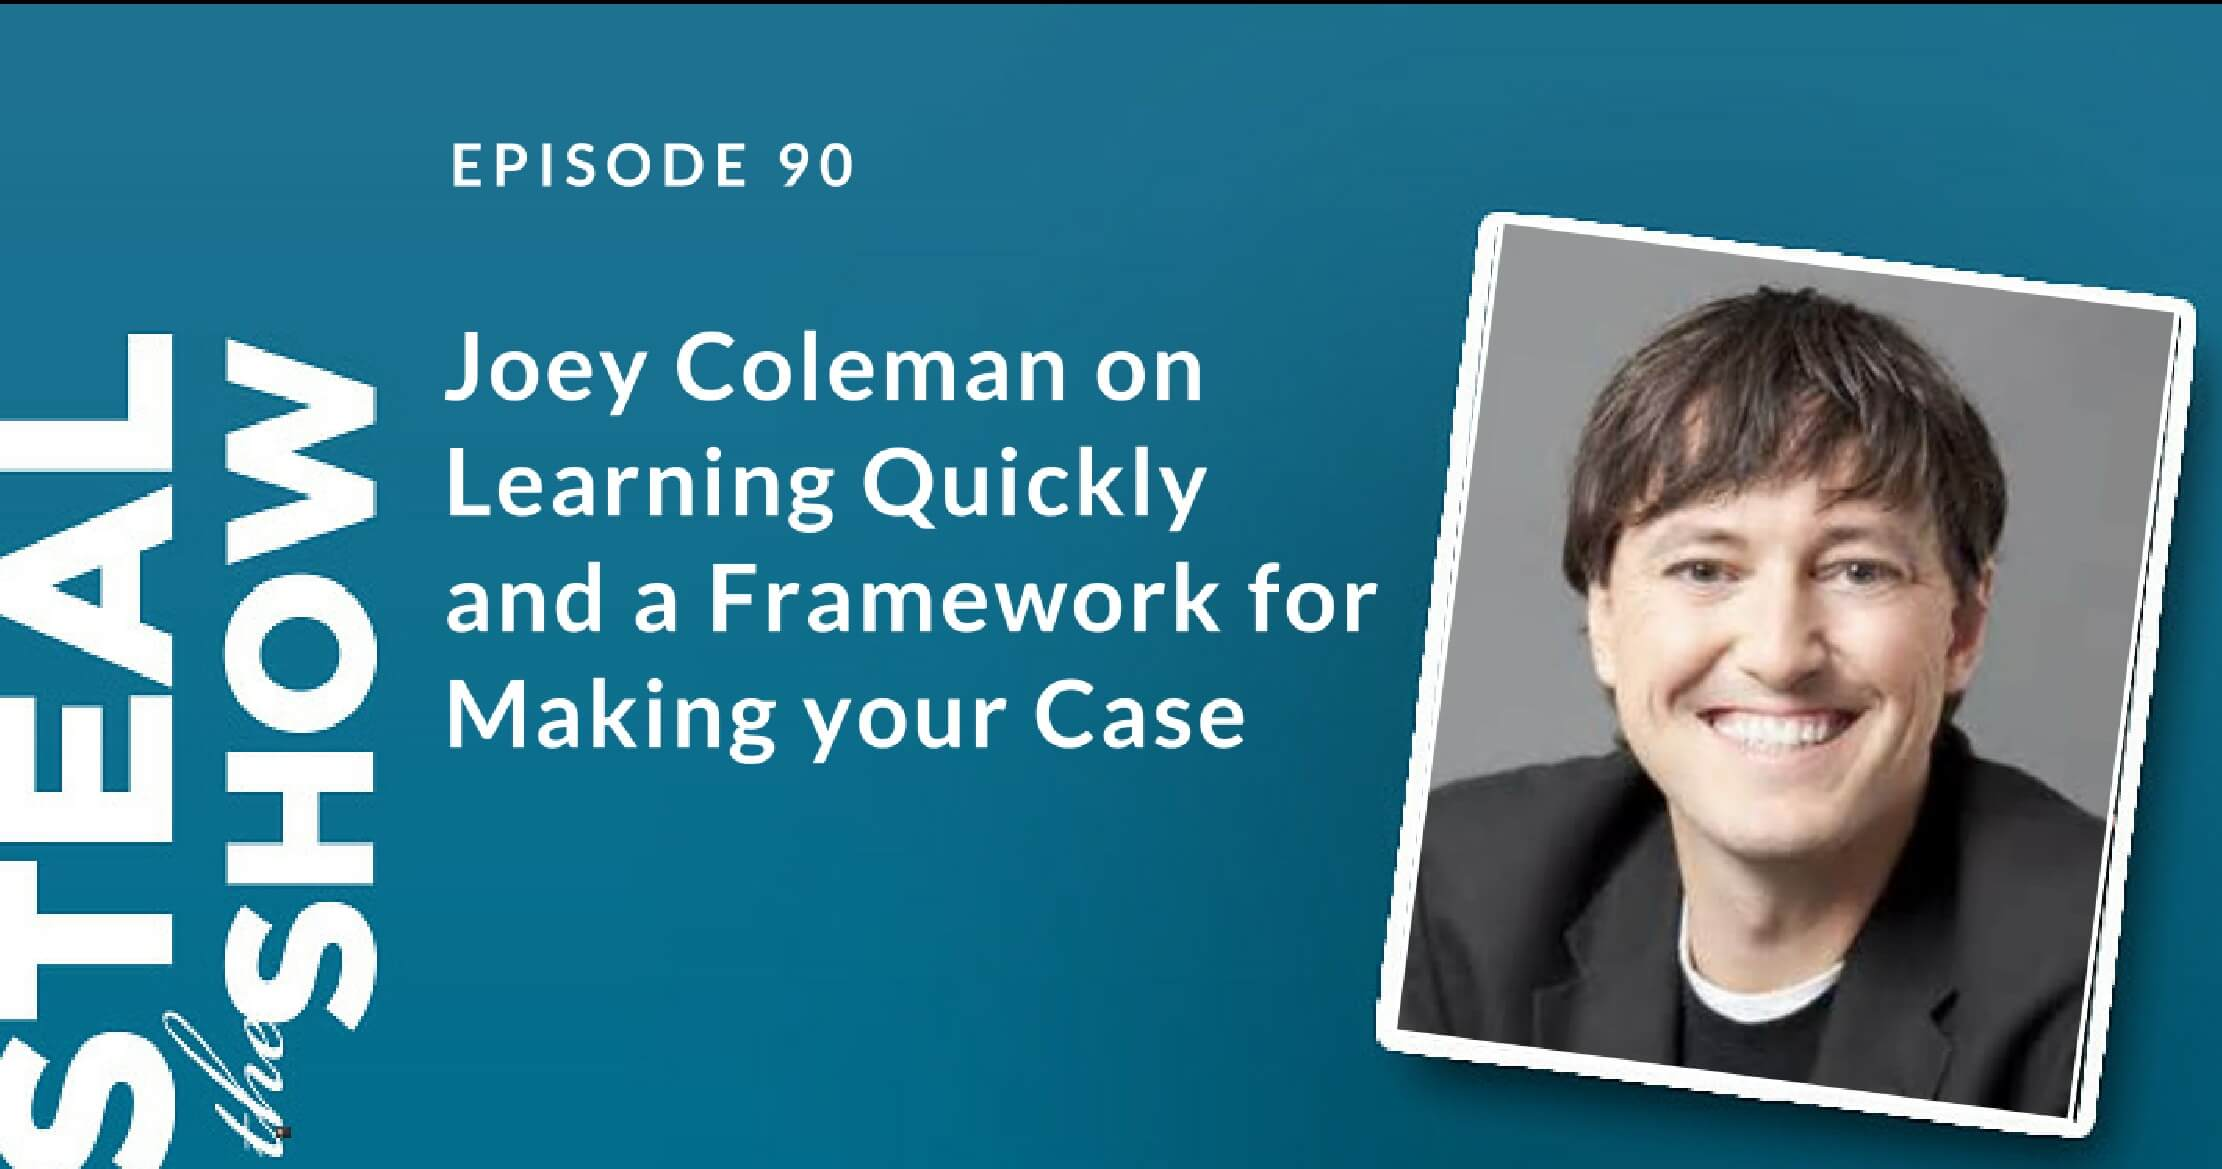 90 Joey Coleman on Learning Quickly and a Framework for Making your Case